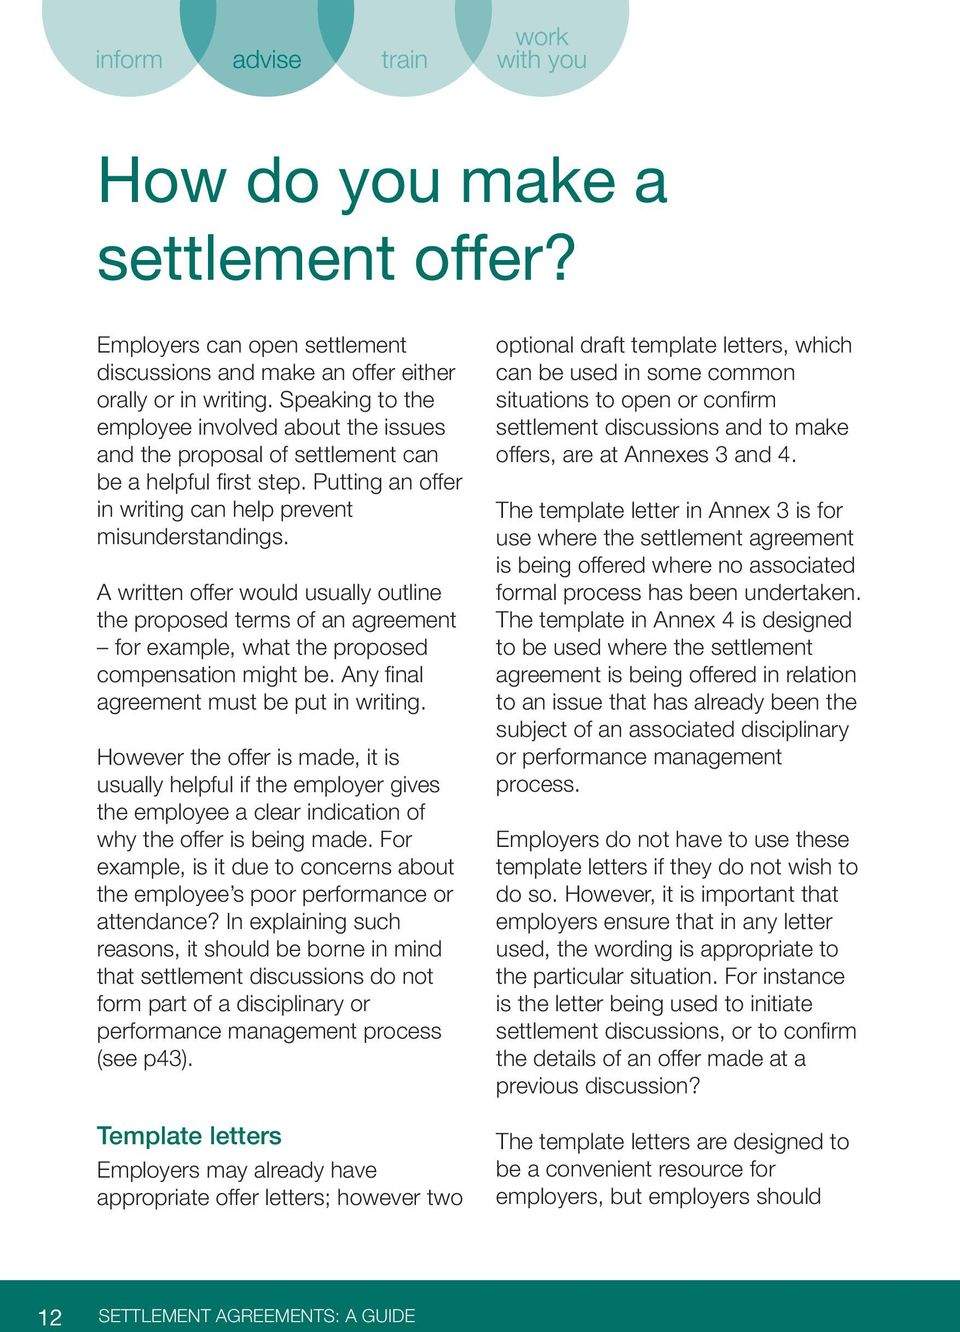 A written offer would usually outline the proposed terms of an agreement for example, what the proposed compensation might be. Any final agreement must be put in writing.